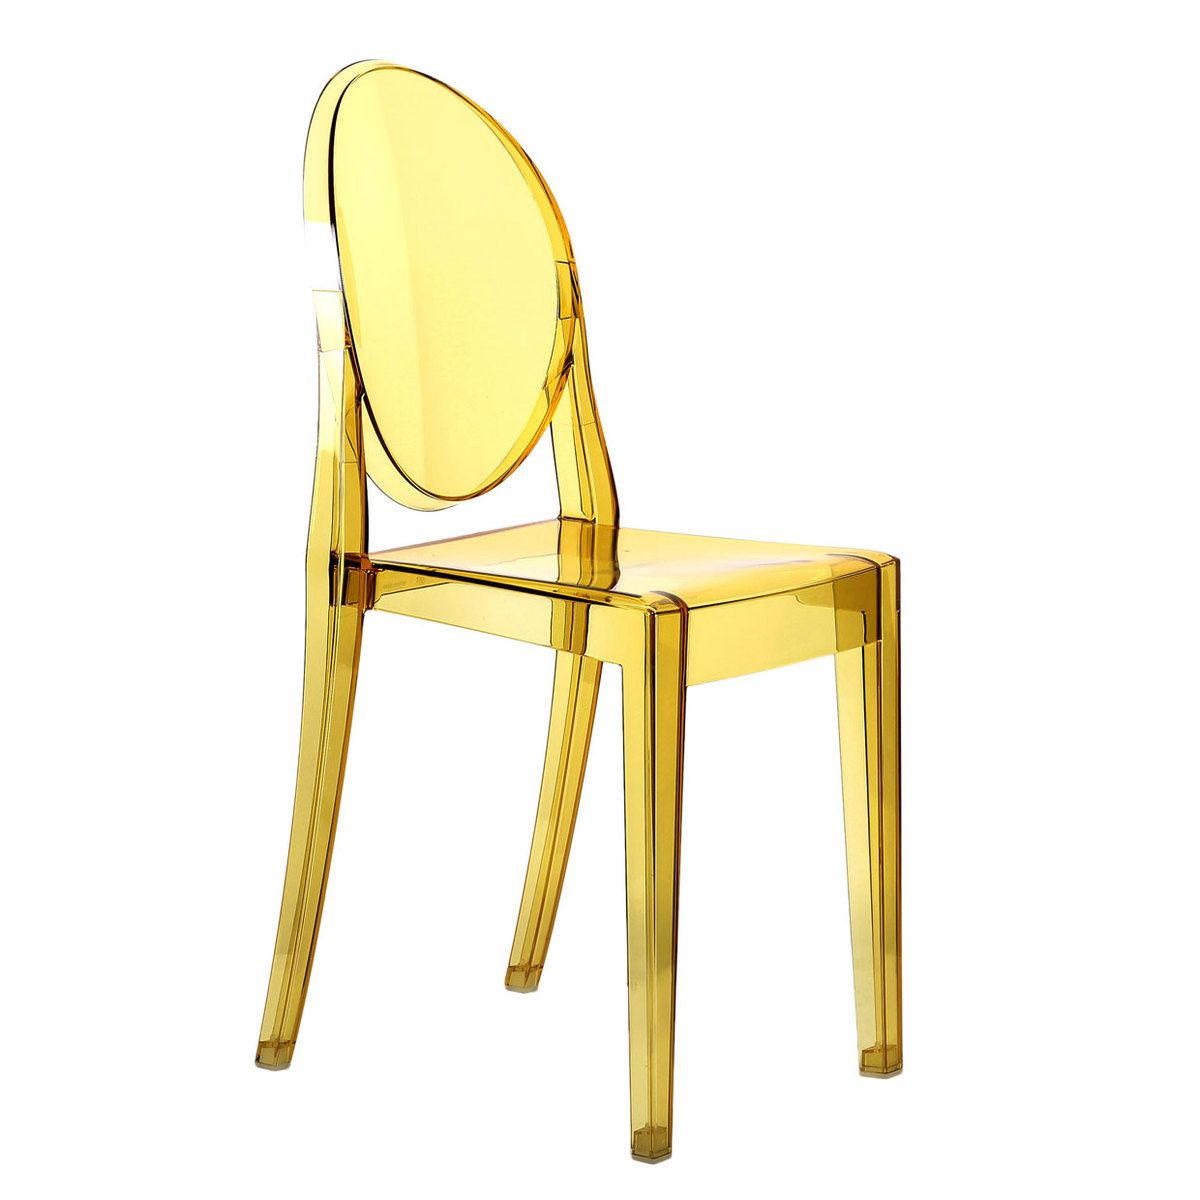 victoria ghost chair yellow furniture m bel. Black Bedroom Furniture Sets. Home Design Ideas